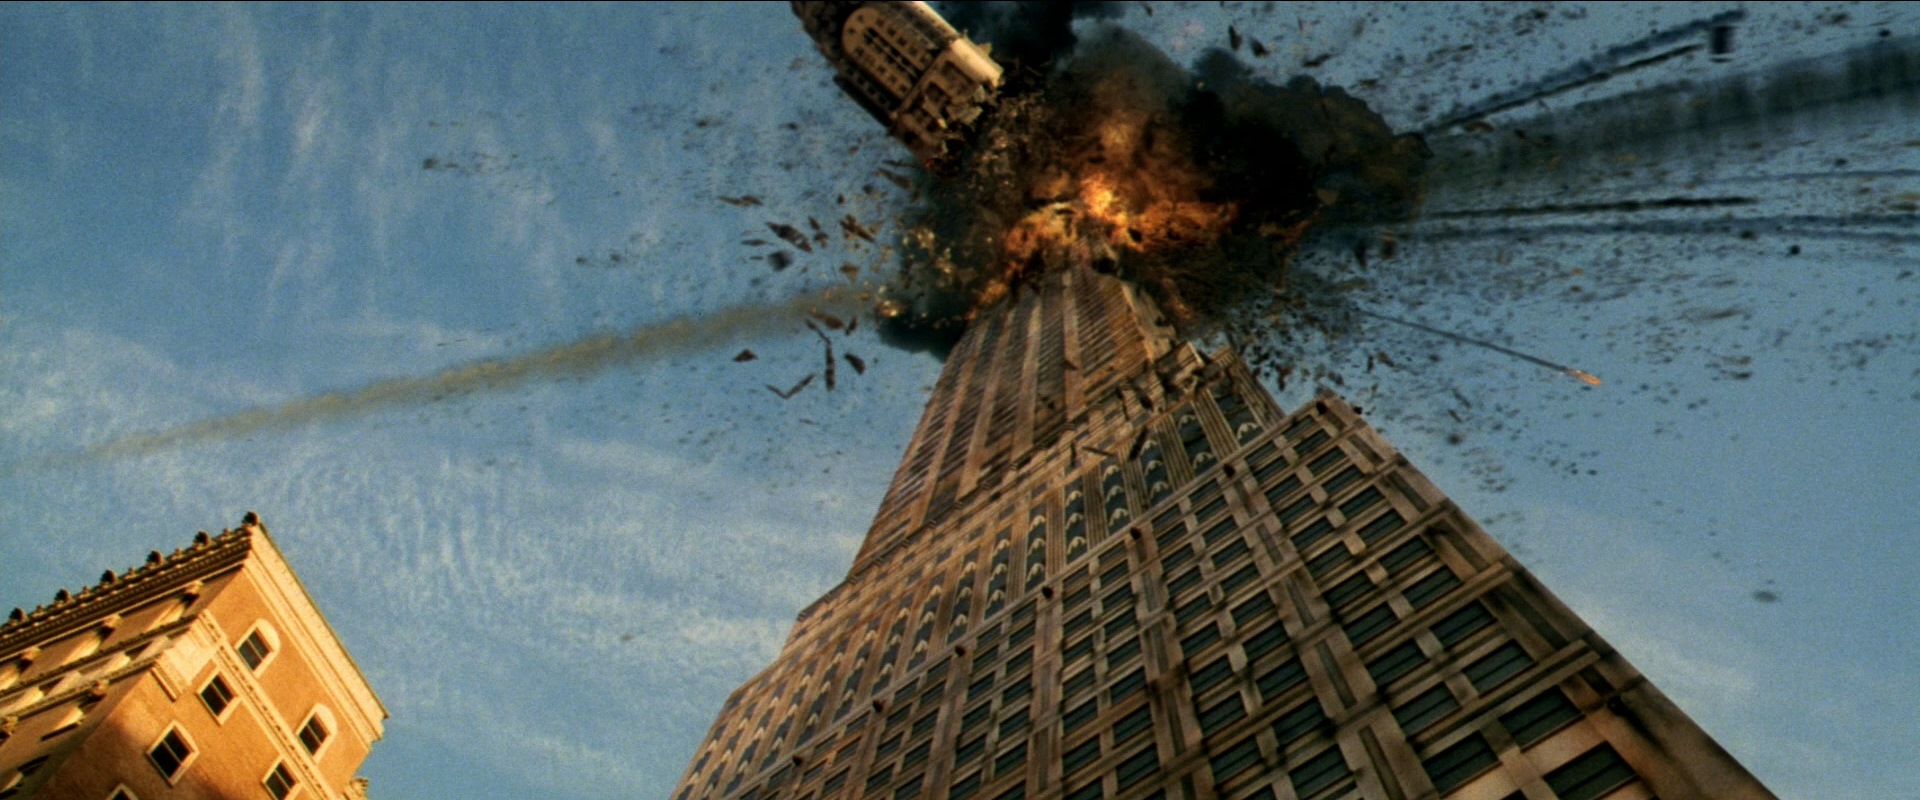 Mass destruction from Armageddon (1998)